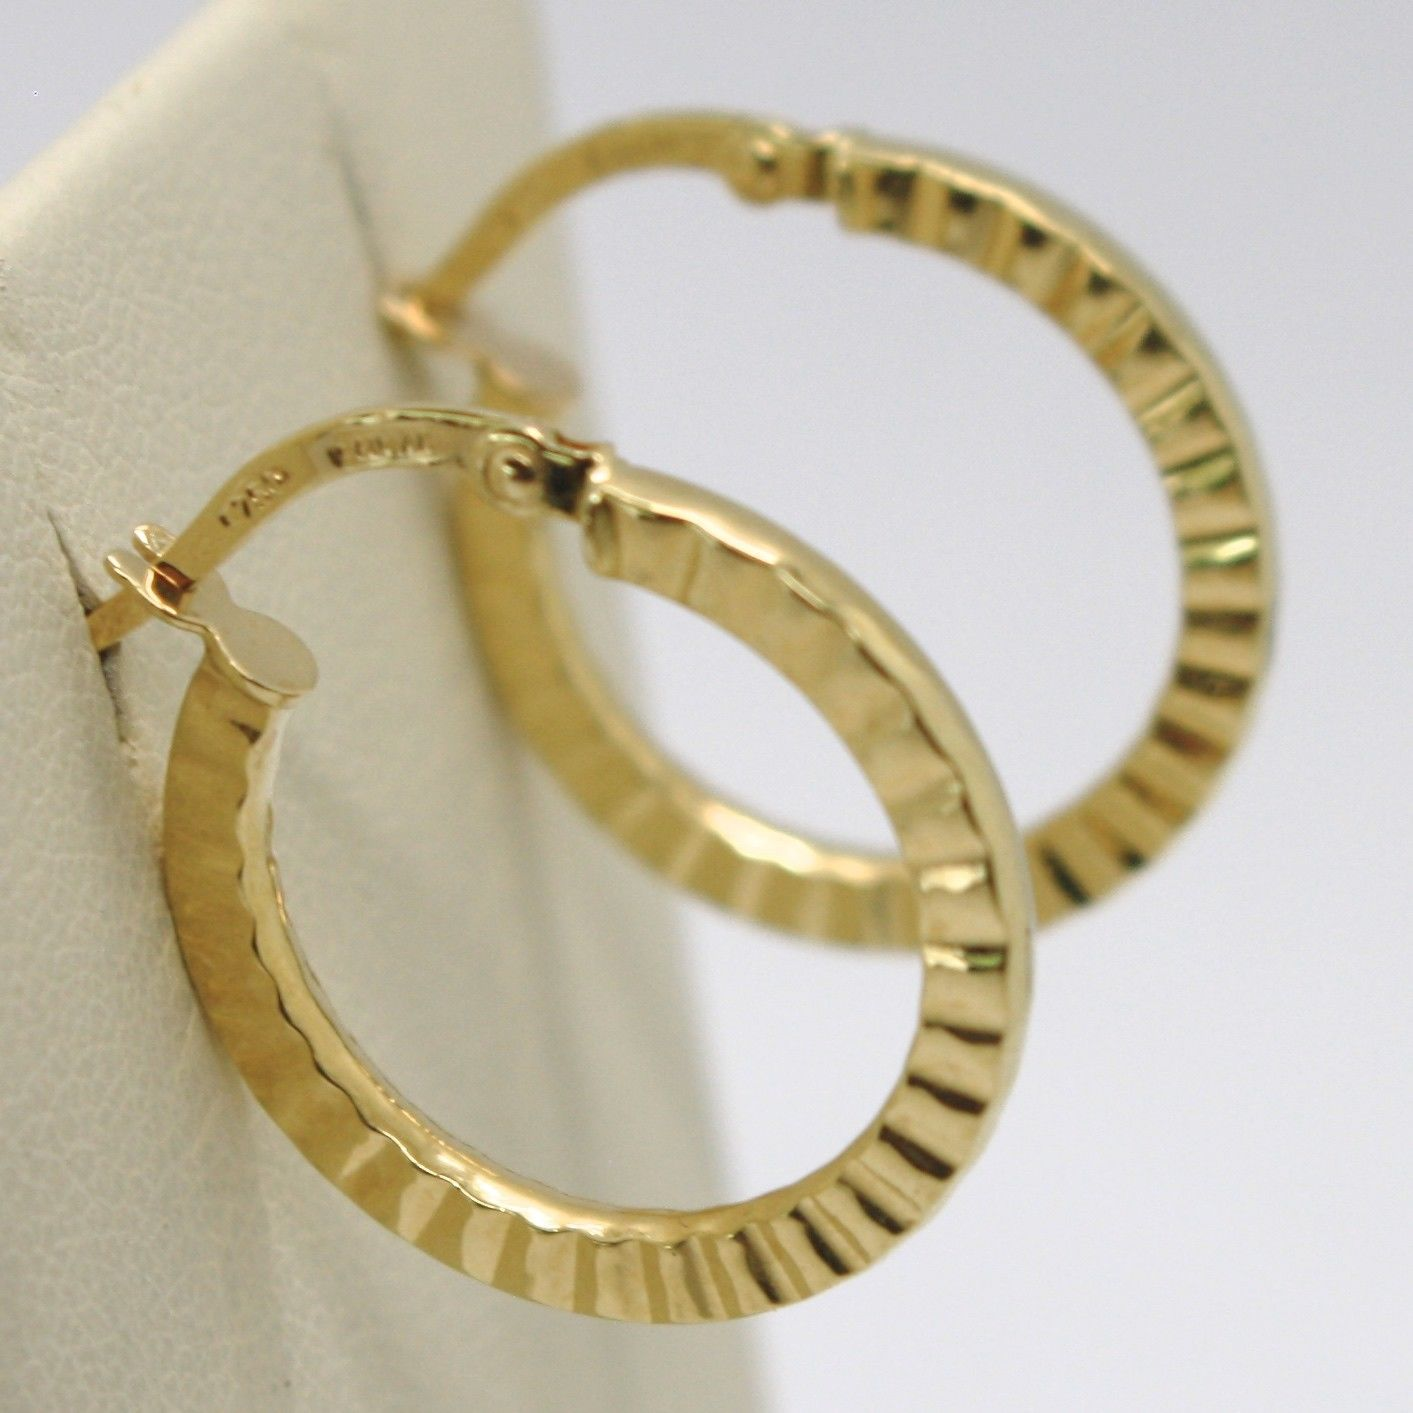 18K YELLOW GOLD CIRCLE HOOPS STRIPED AND HAMMERED EARRINGS 21 MM x 2 MM, ITALY